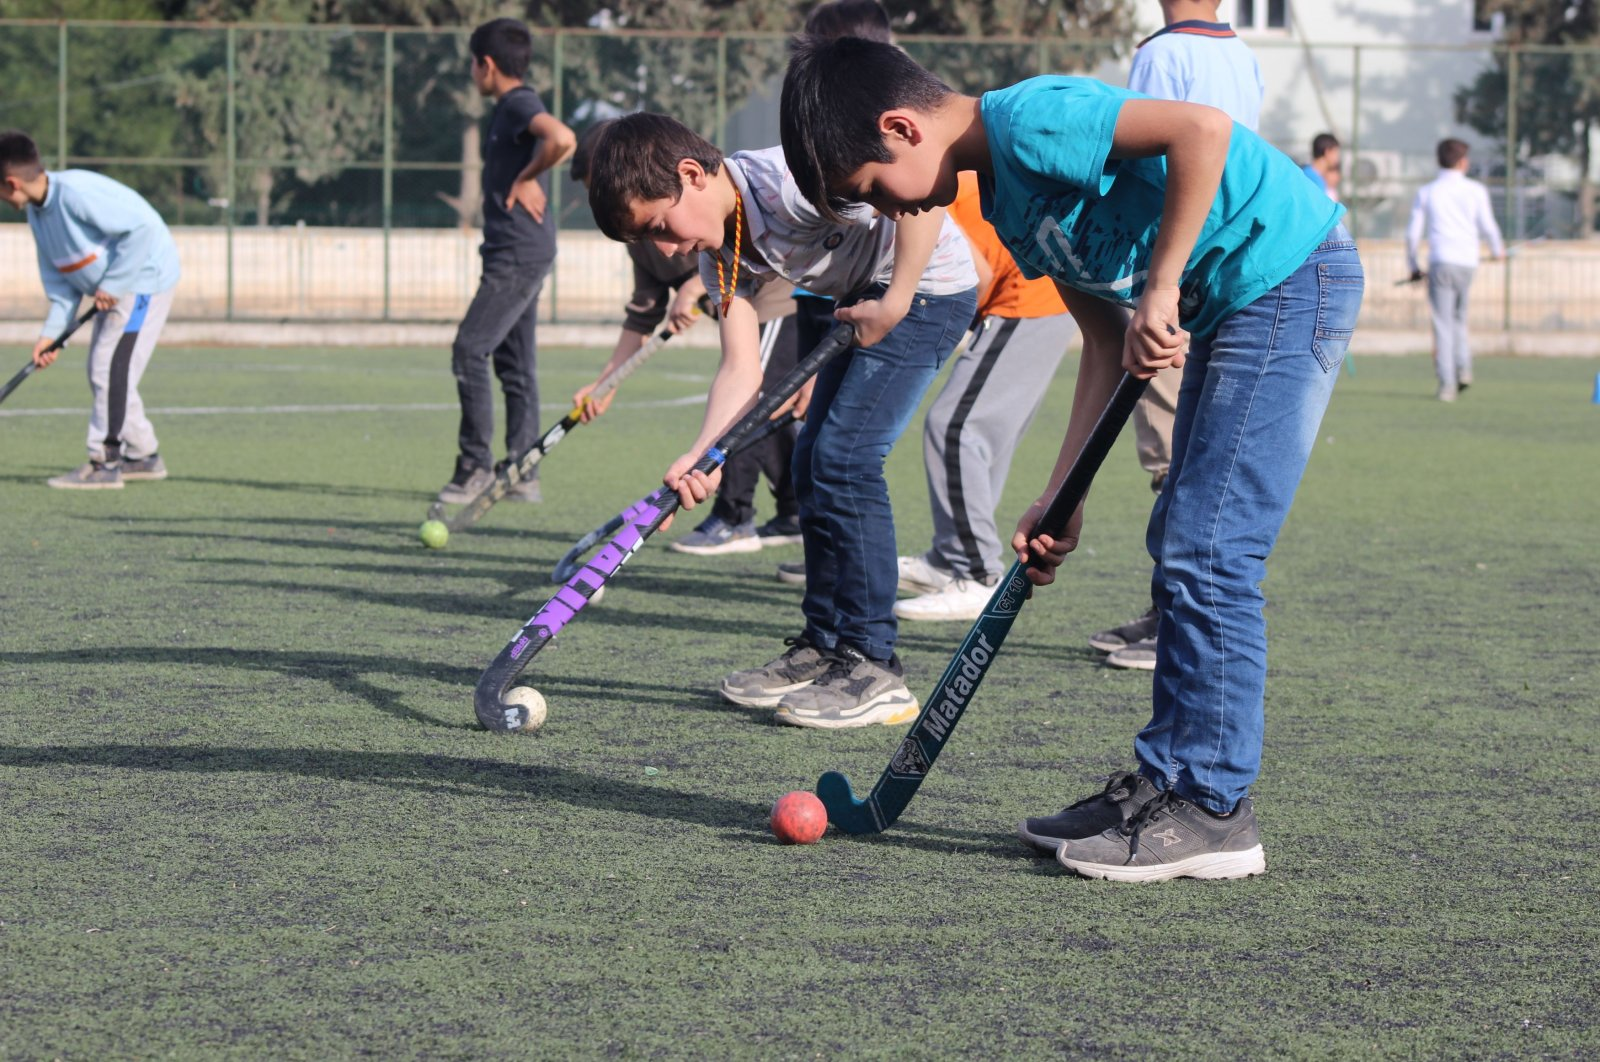 More and more boys take up hockey nowadays in Suruç. (AA Photo)